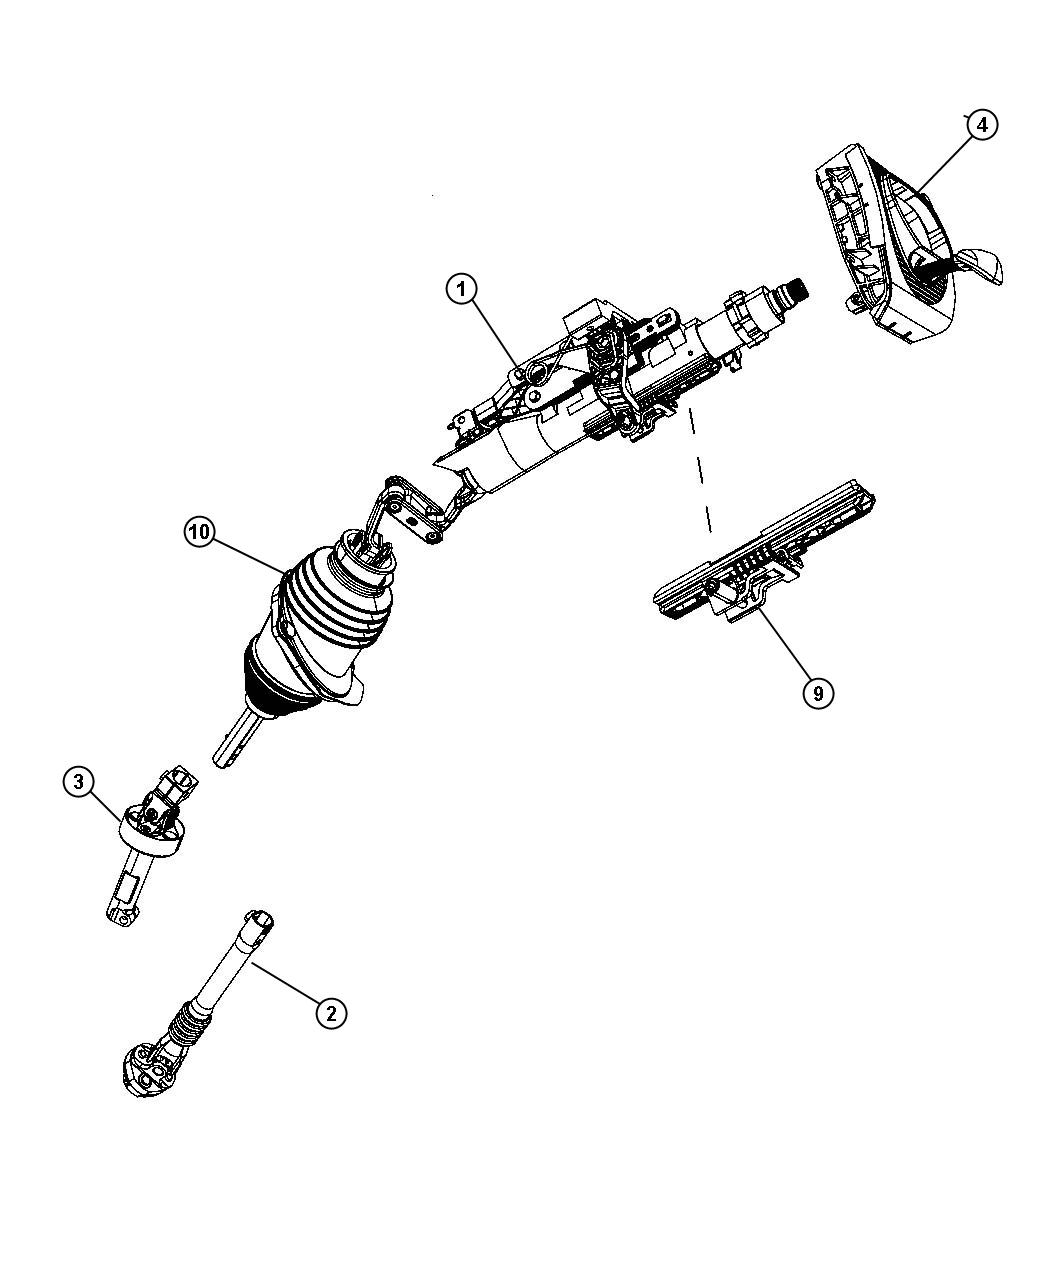 Telescoping Steering Column